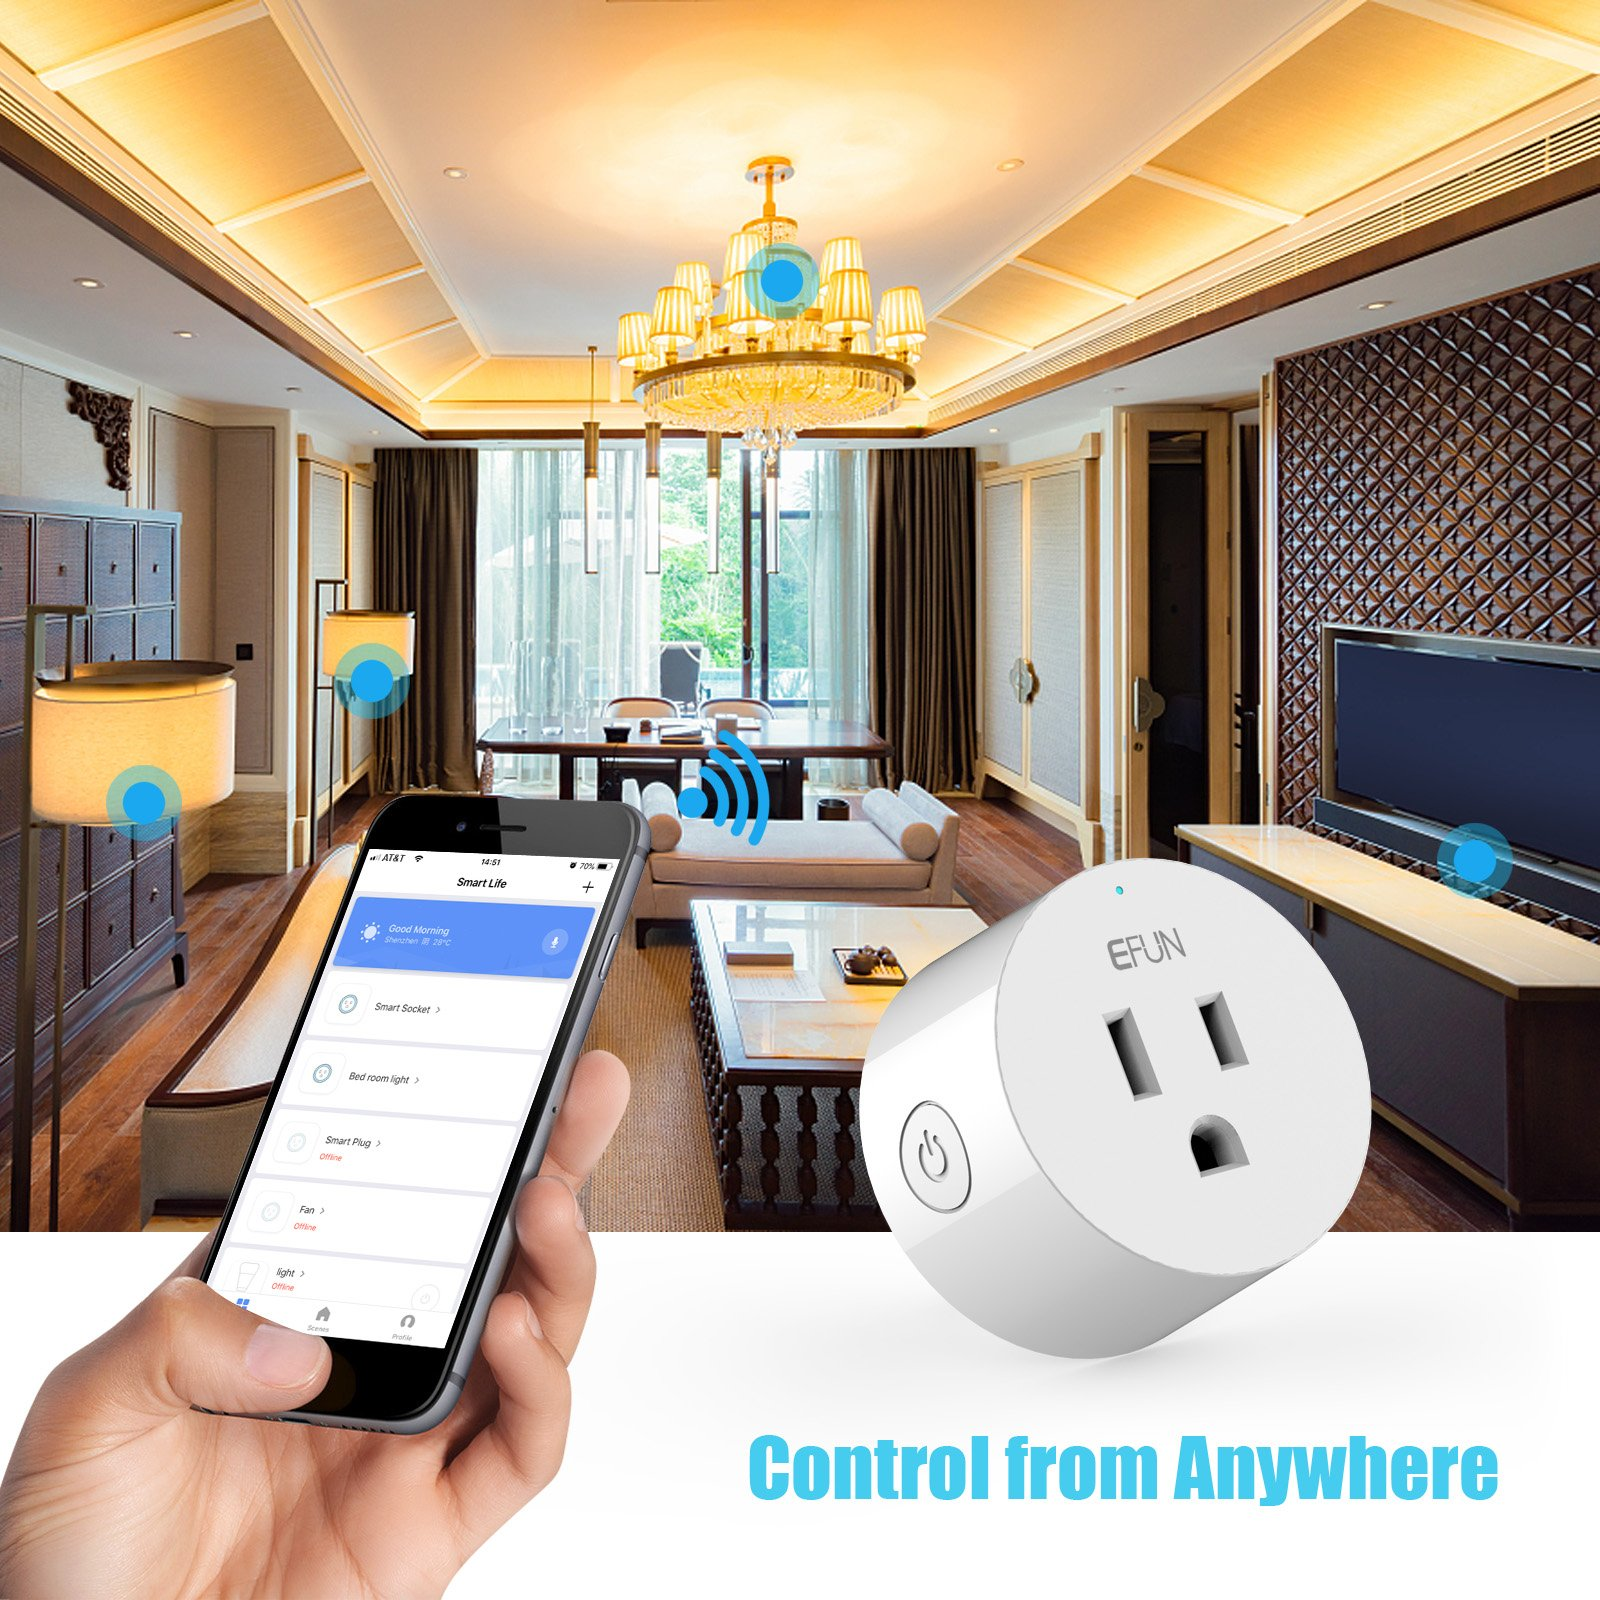 EFUN SH330W 4Piece Mini Smart Outlet, No Hub Required, Overload Protection, Fire Retardant Material, Space Saving, Works with Alexa and Google Assistant, SH330W 4 Pack, 4 Piece by EFUN (Image #7)